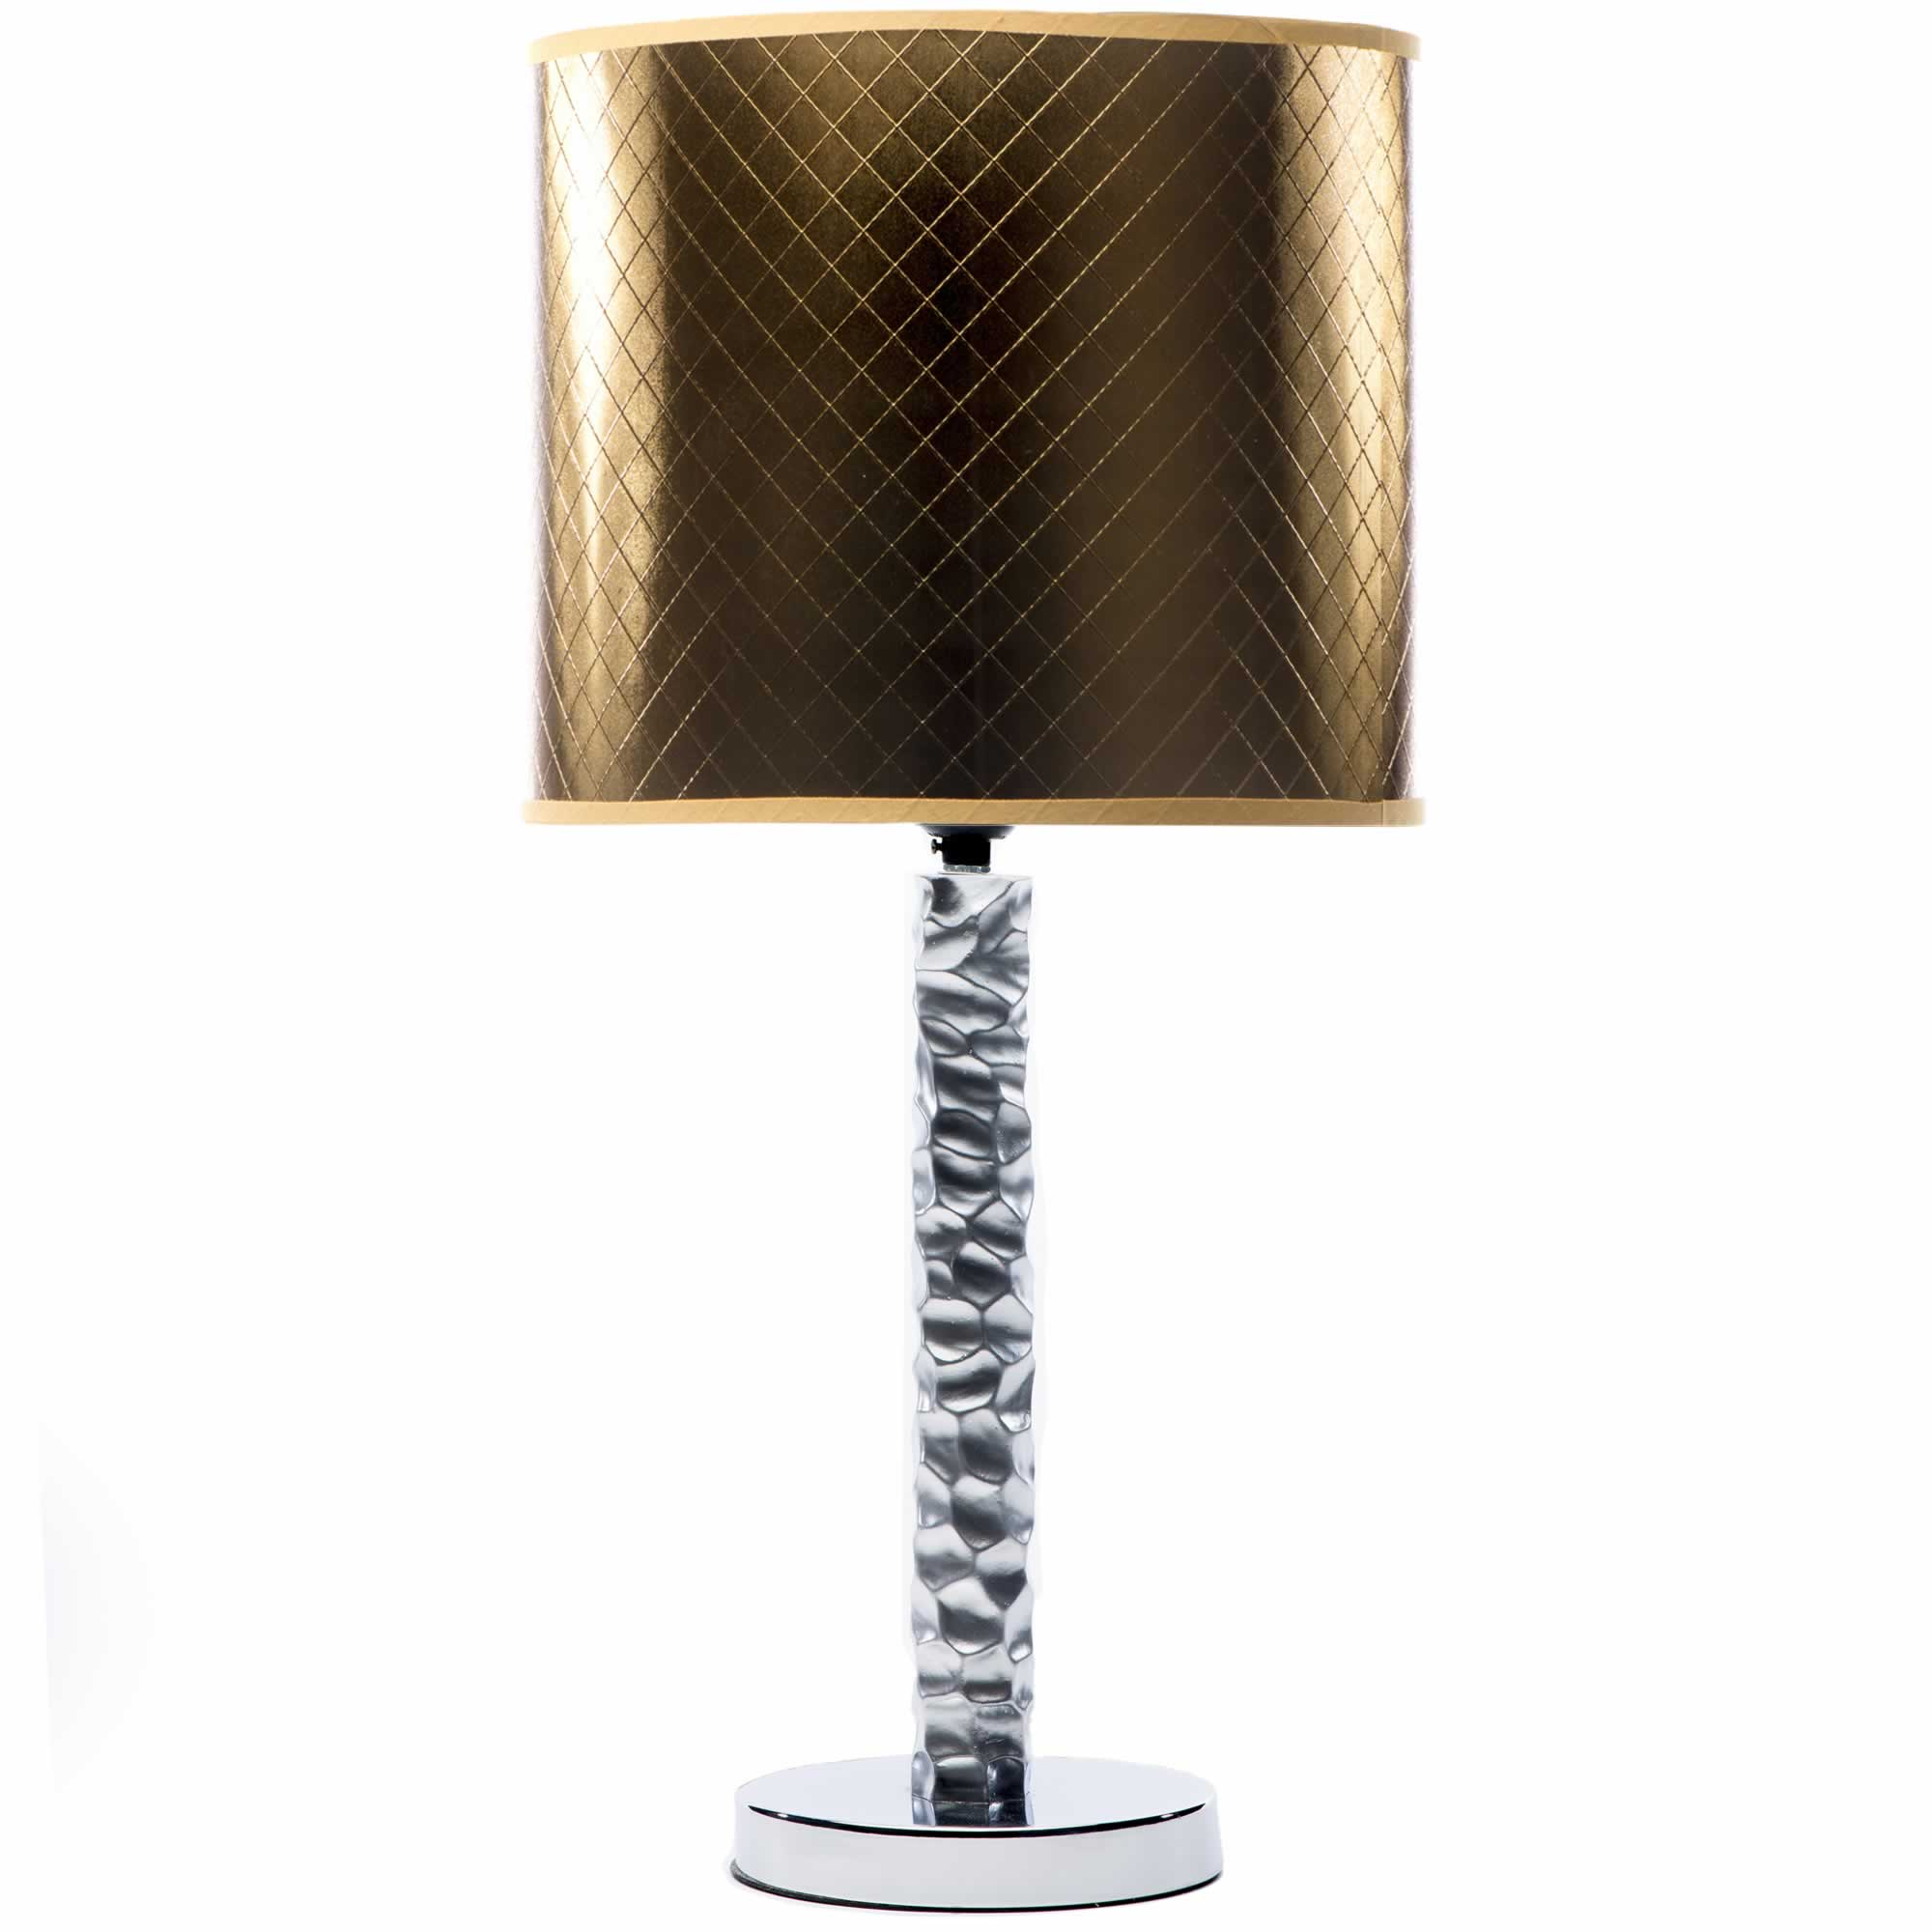 The Metallic Ore Table Lamp : SKU TL0005 Contemporary Lamps by Modern Crowd